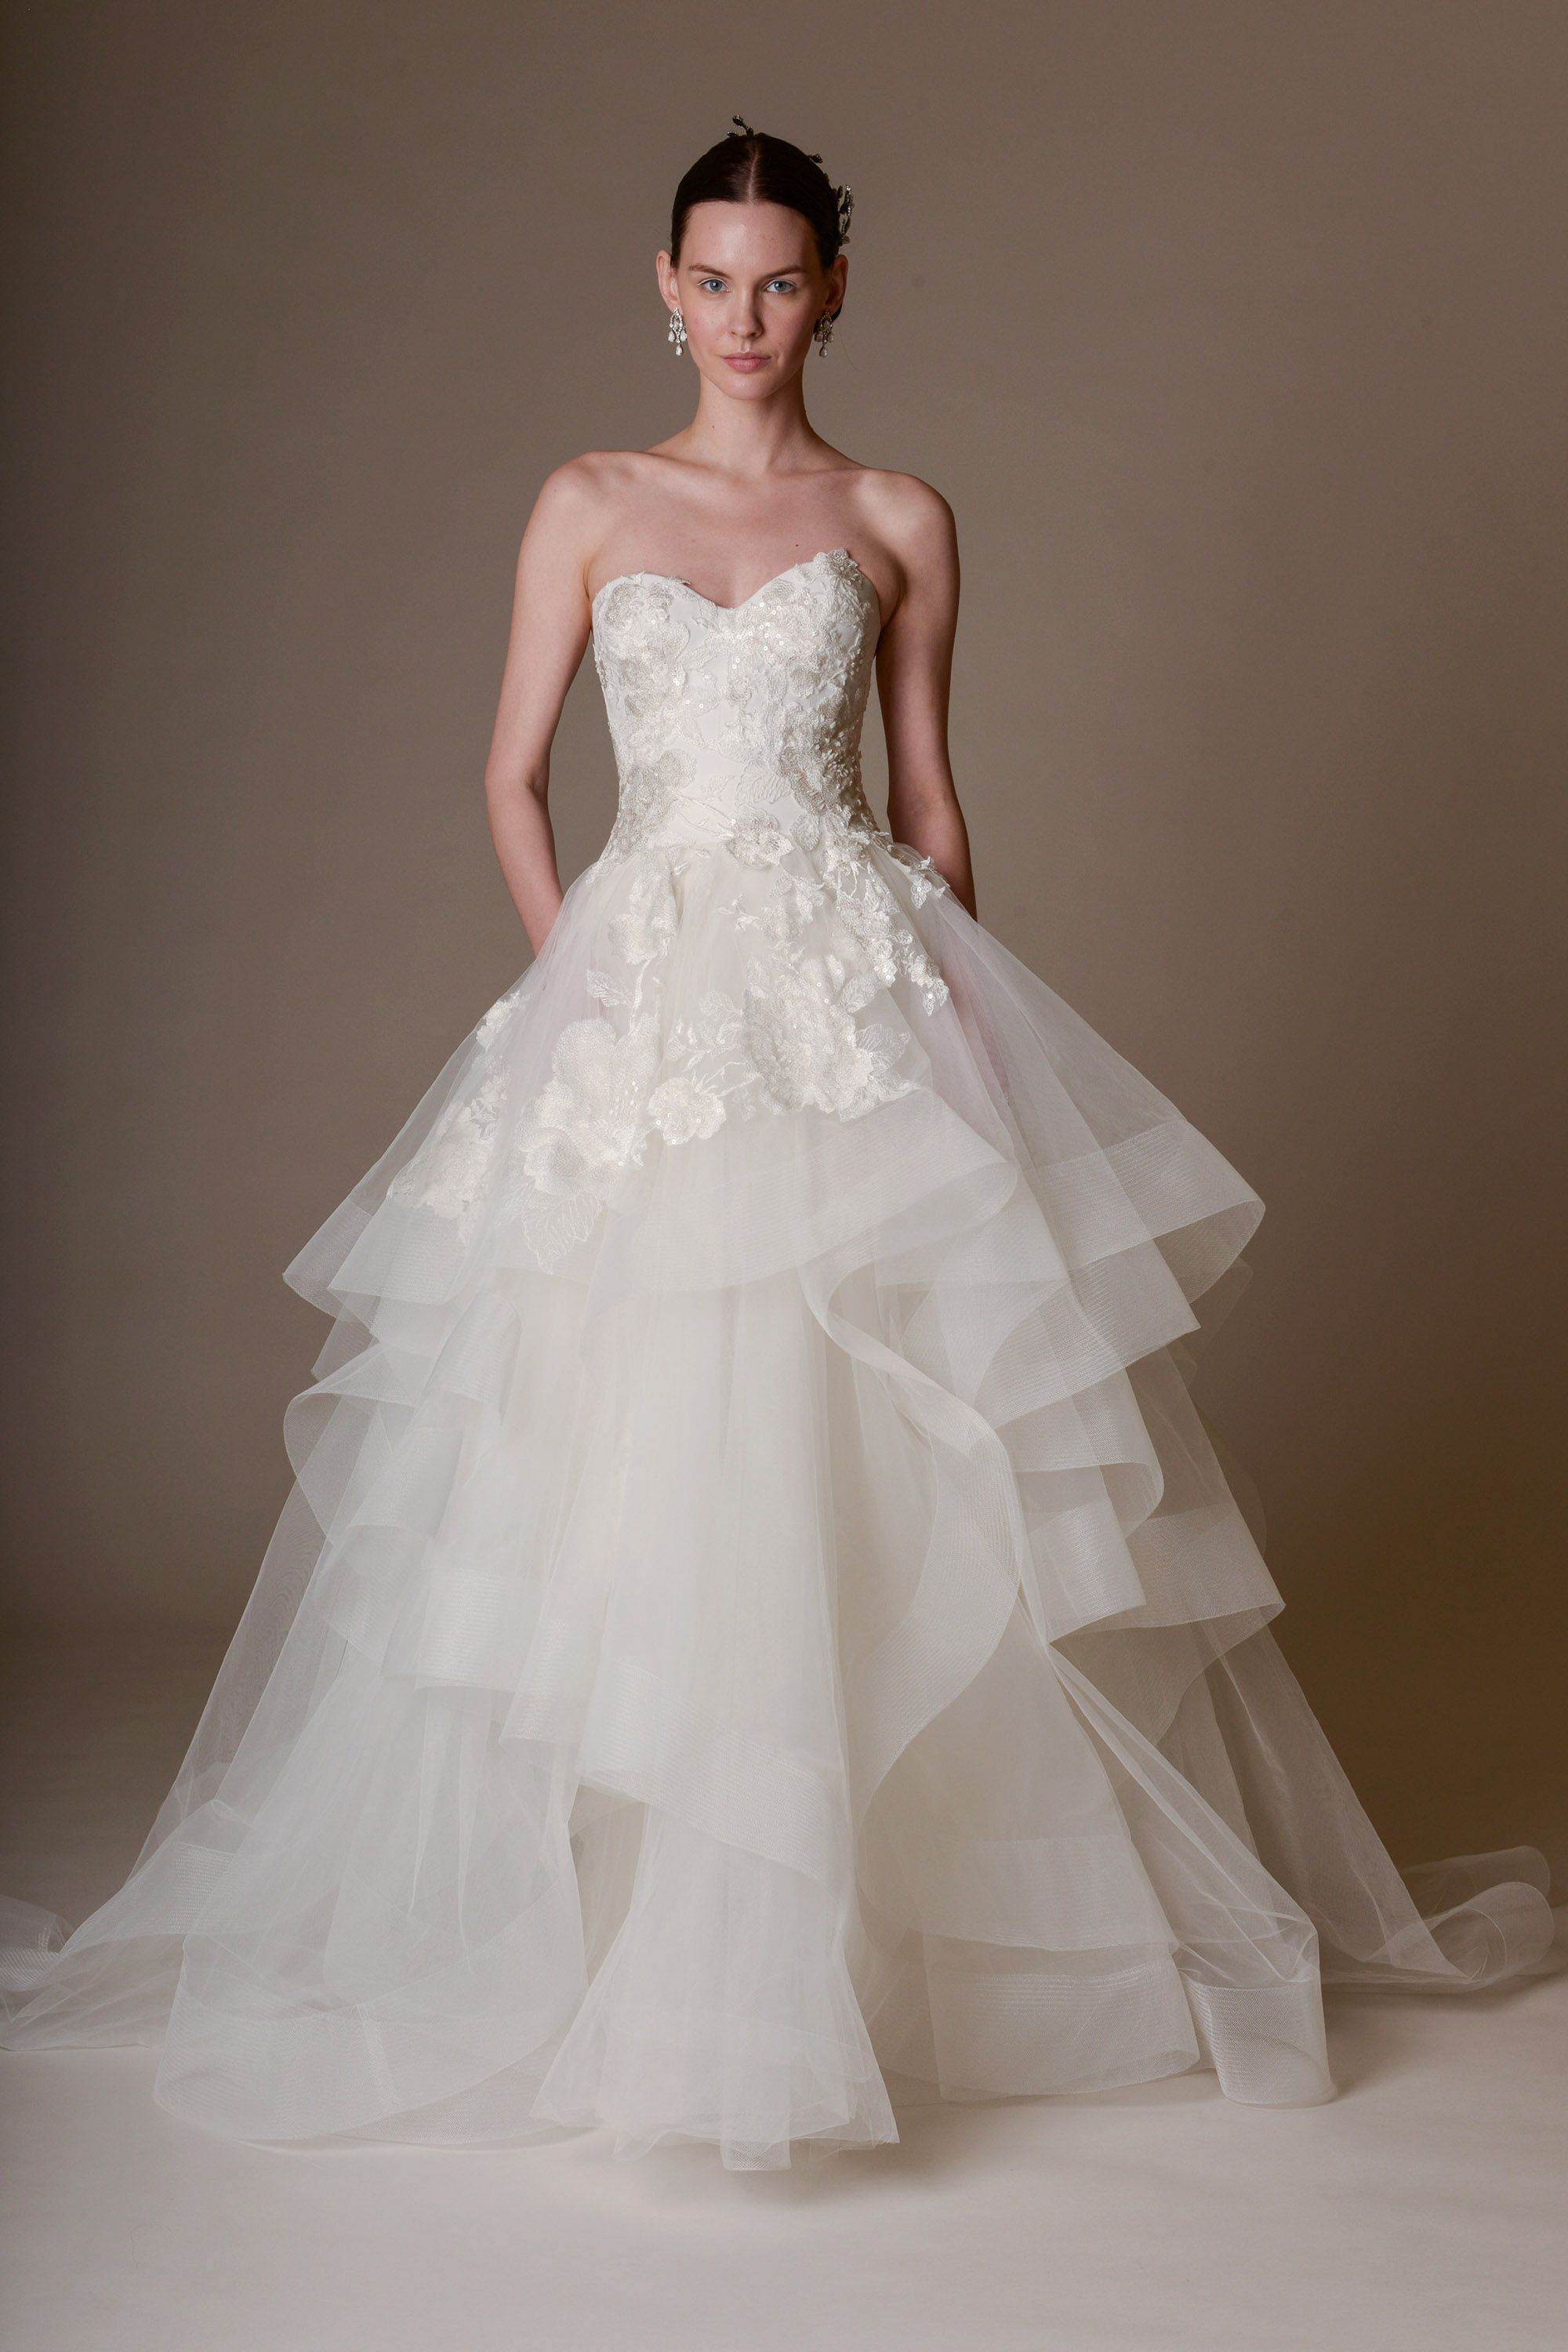 Spring 2016 Designer Wedding Dresses - Couture Wedding Dress Designers